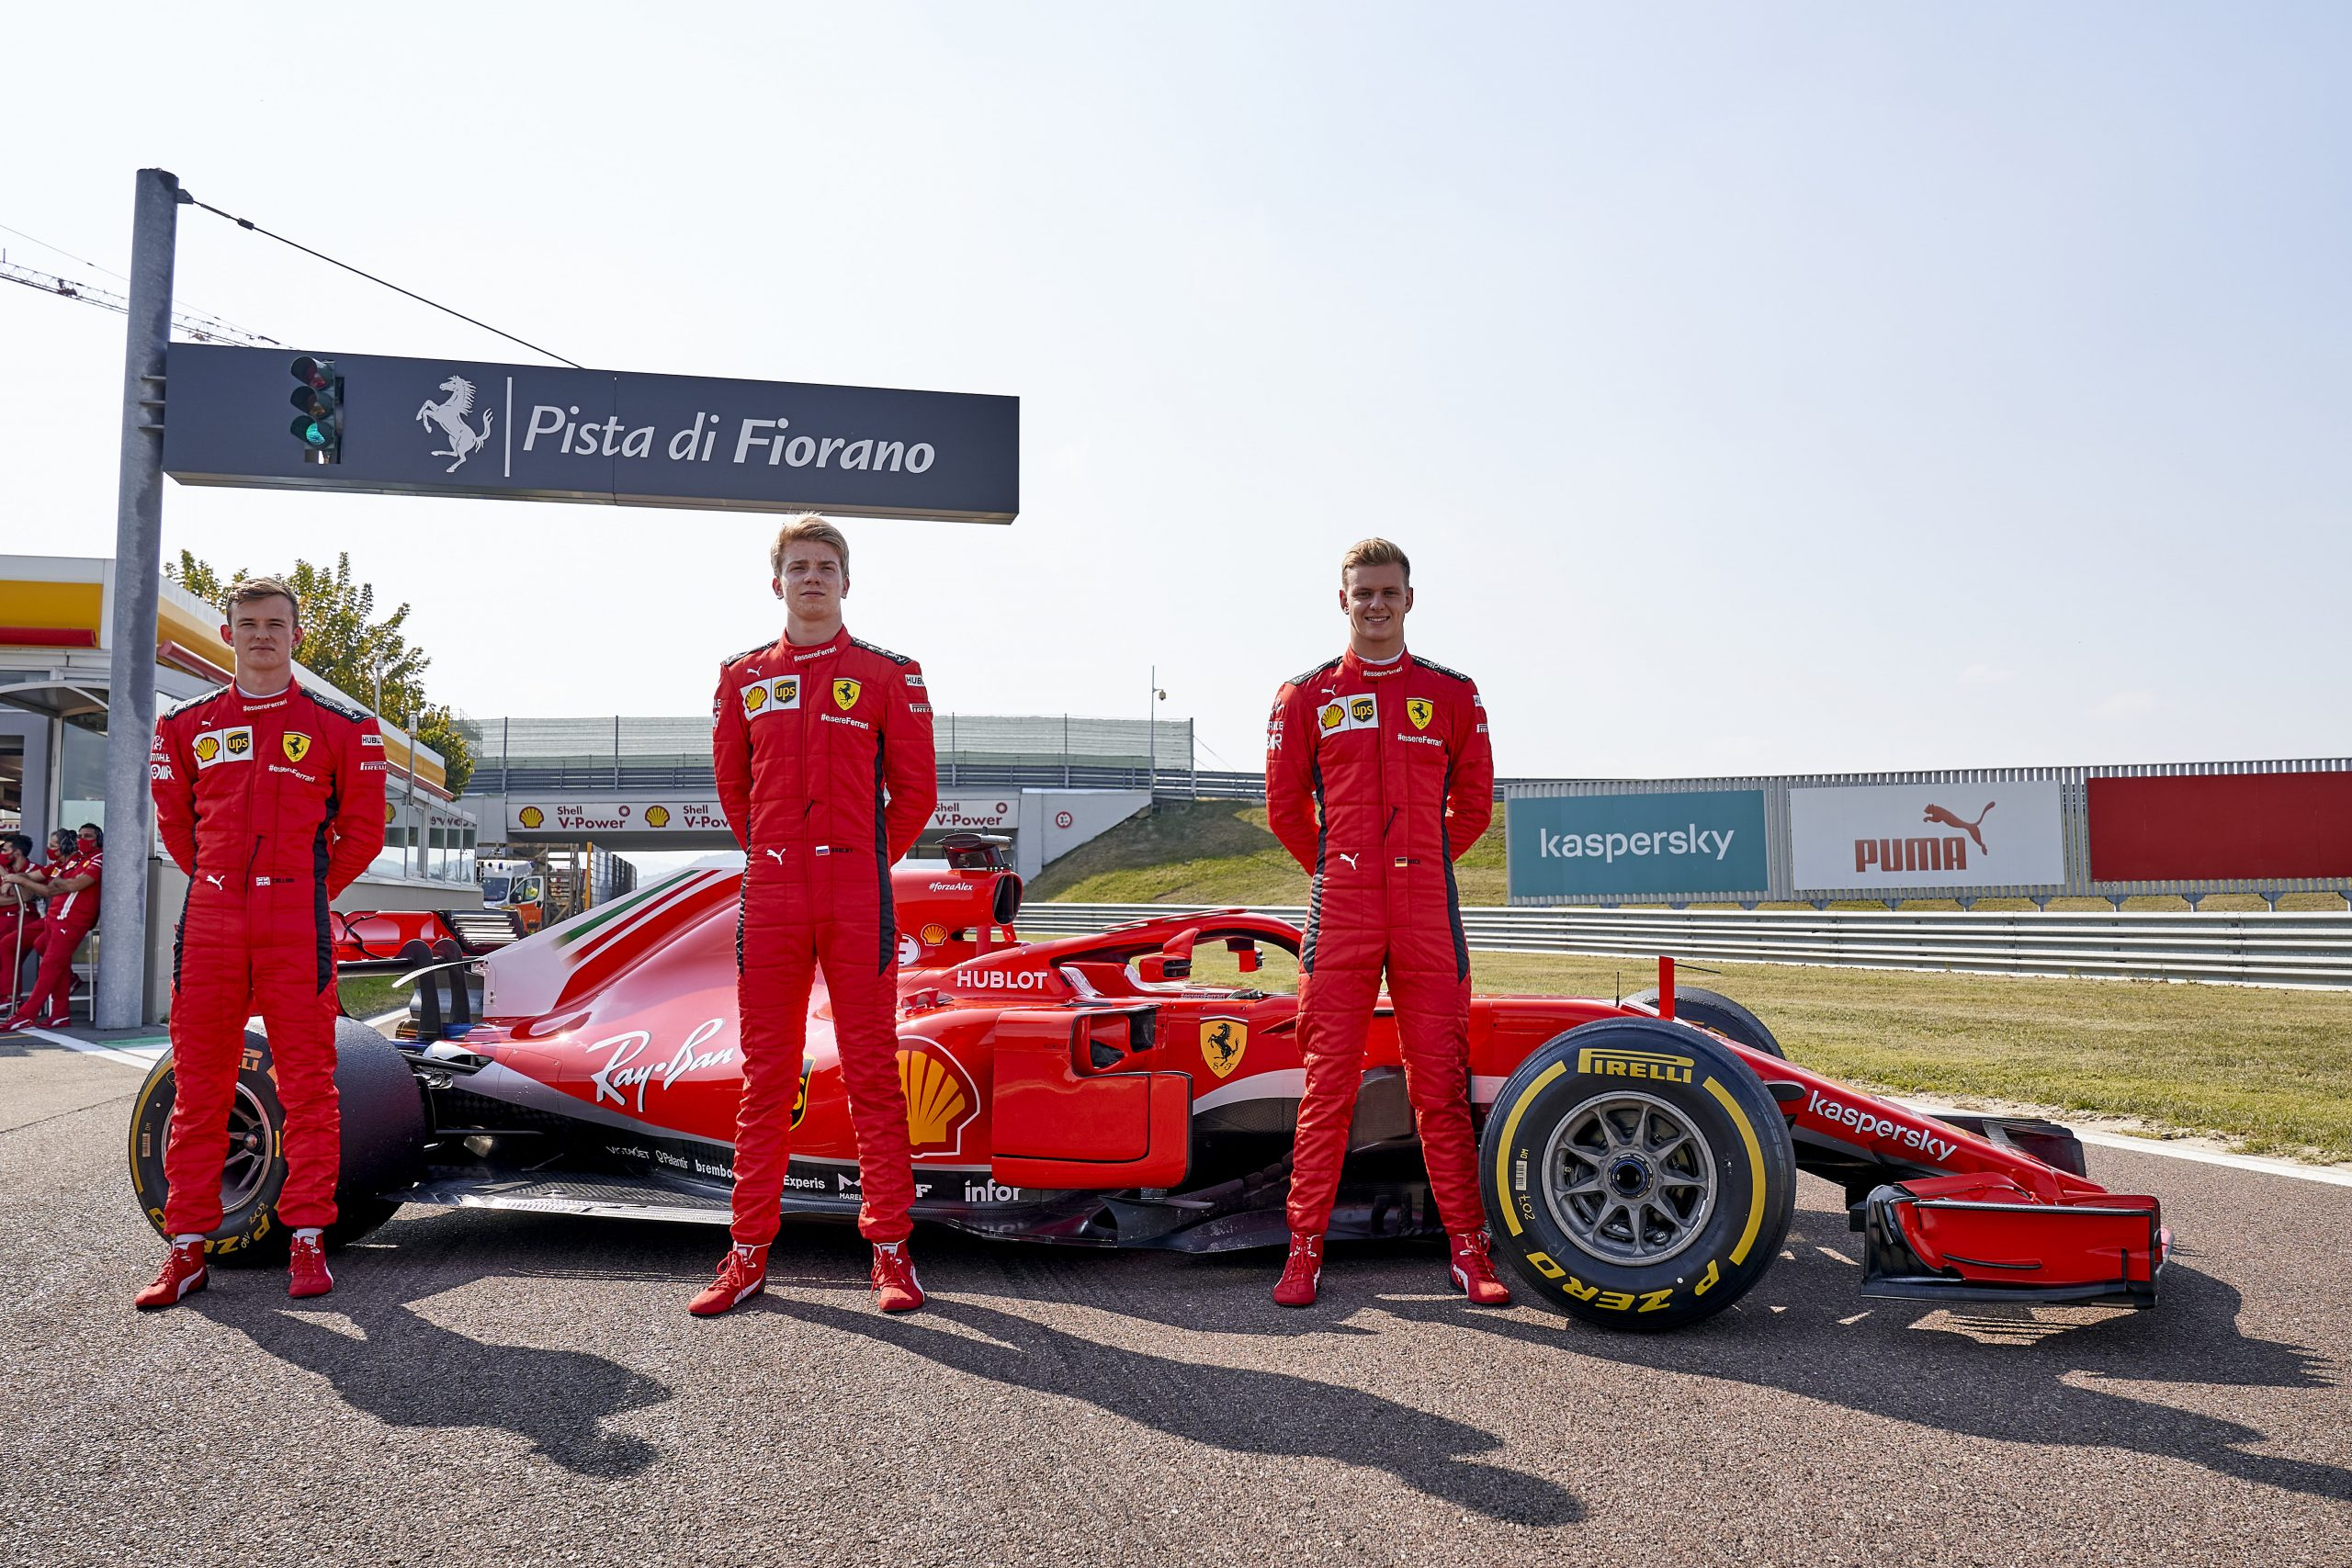 Latest F1 Driver Rumors Ferrari Driver Academy Related Amus Report